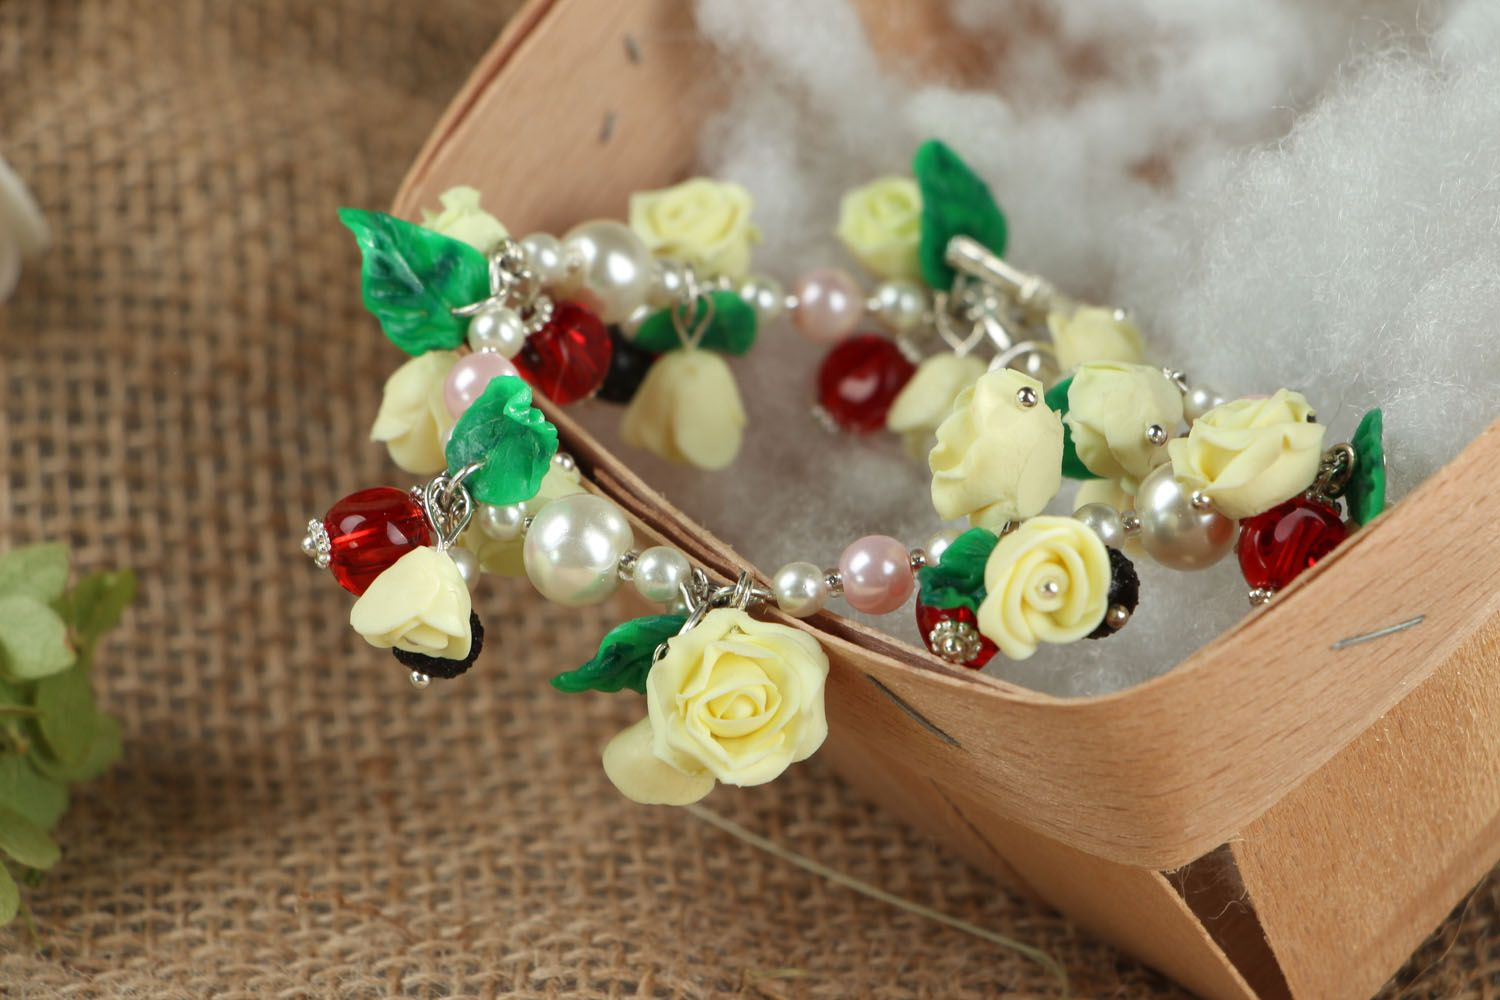 Bracelet with charms in the shape of roses photo 5